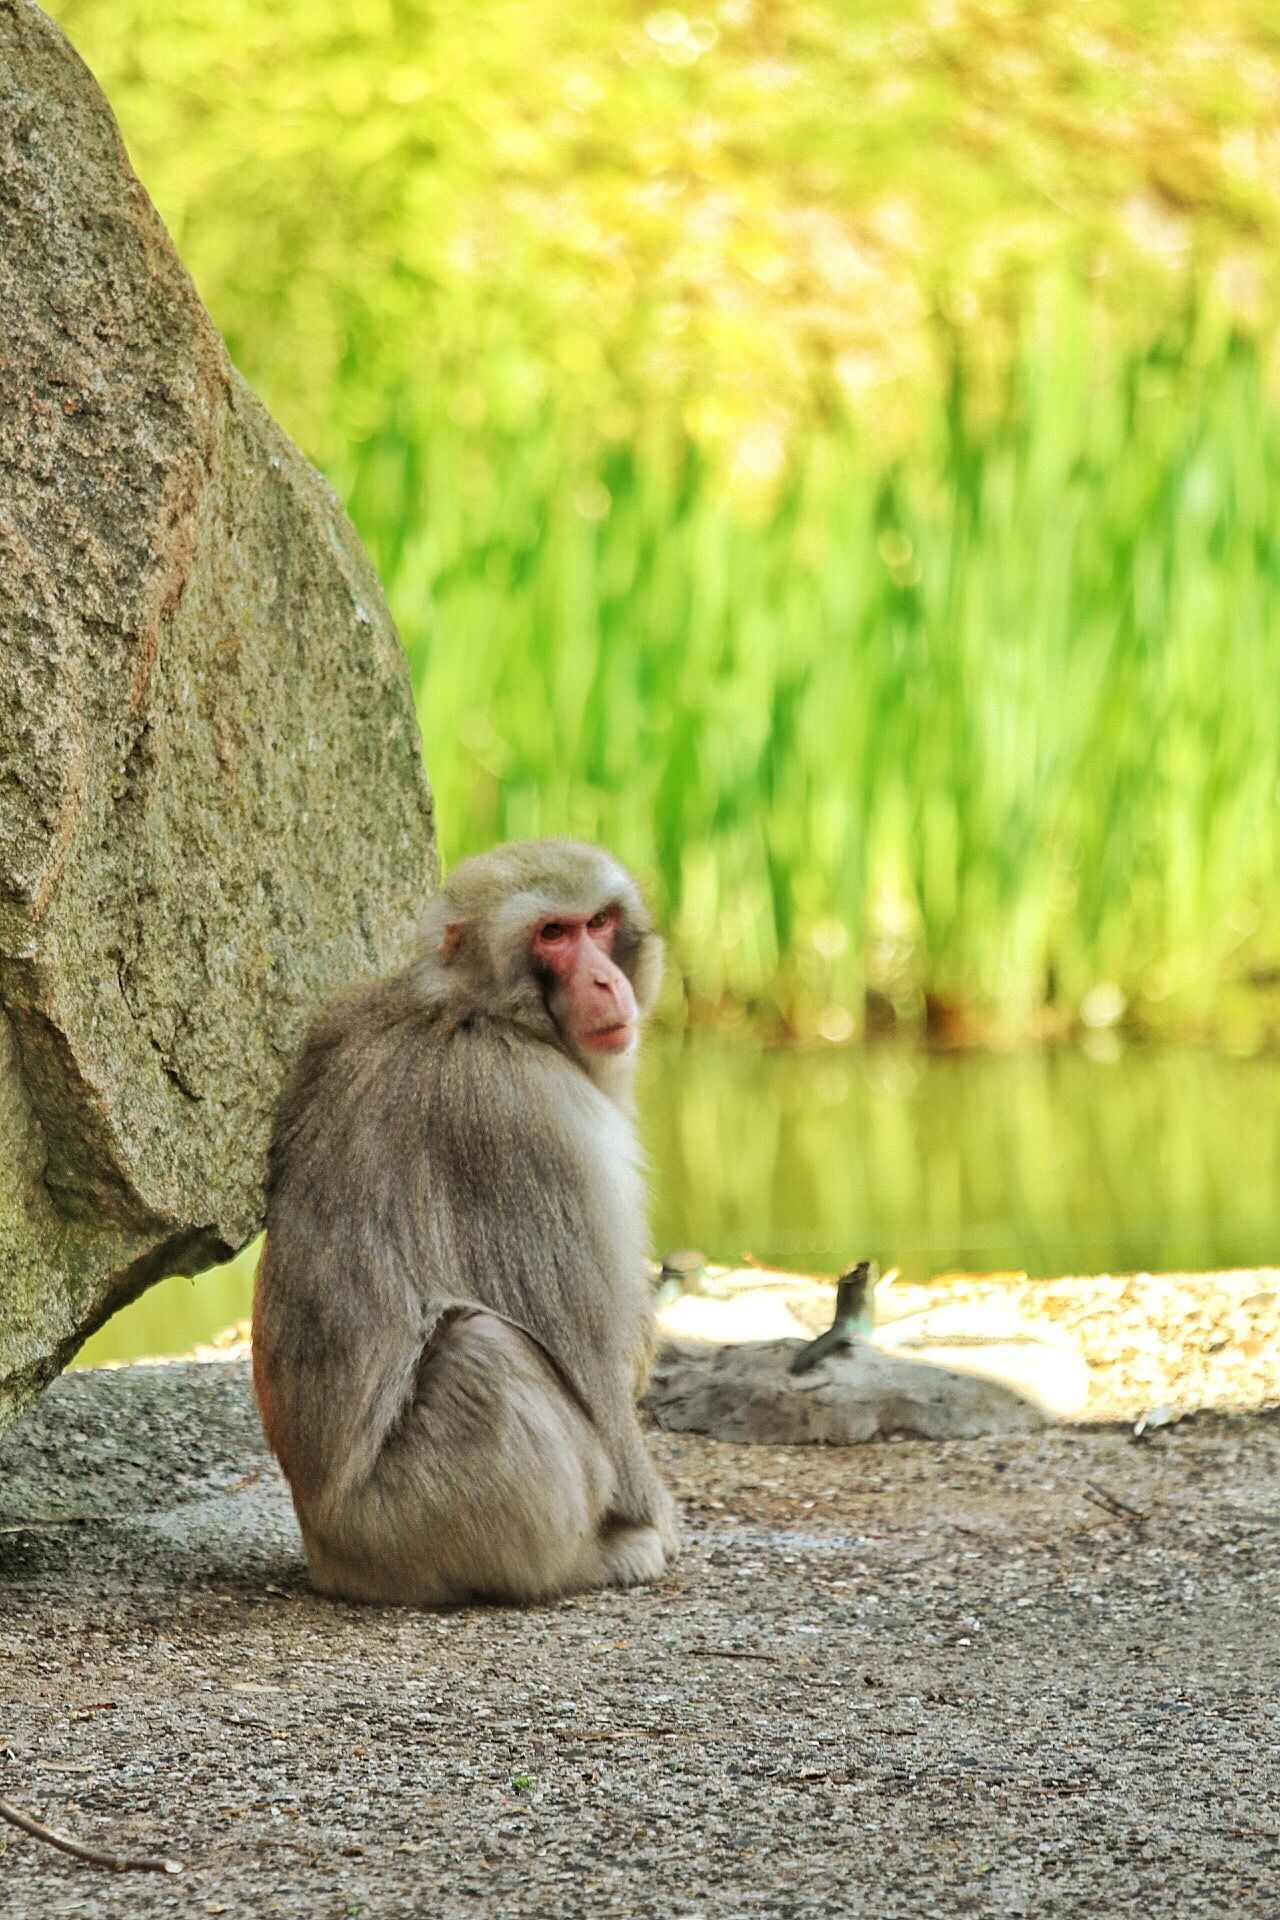 Animal Themes Animals In The Wild One Animal Monkey Mammal Rock - Object Sitting Day Outdoors Animal Wildlife Baboon Ape Monkeys Monkey Business No People Nature Full Length Close-up Japanese Macaque